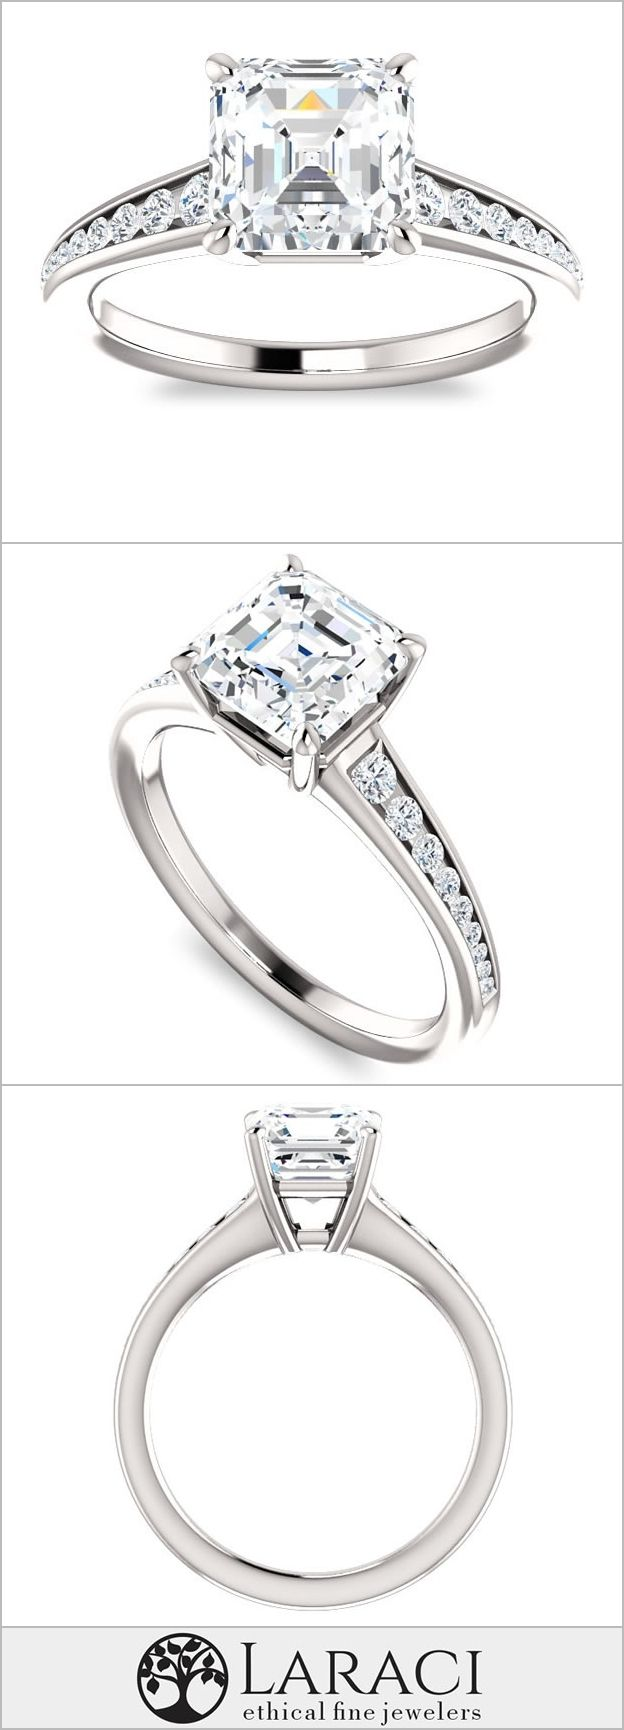 K white gold tapered engagement ring with moissanite accents set